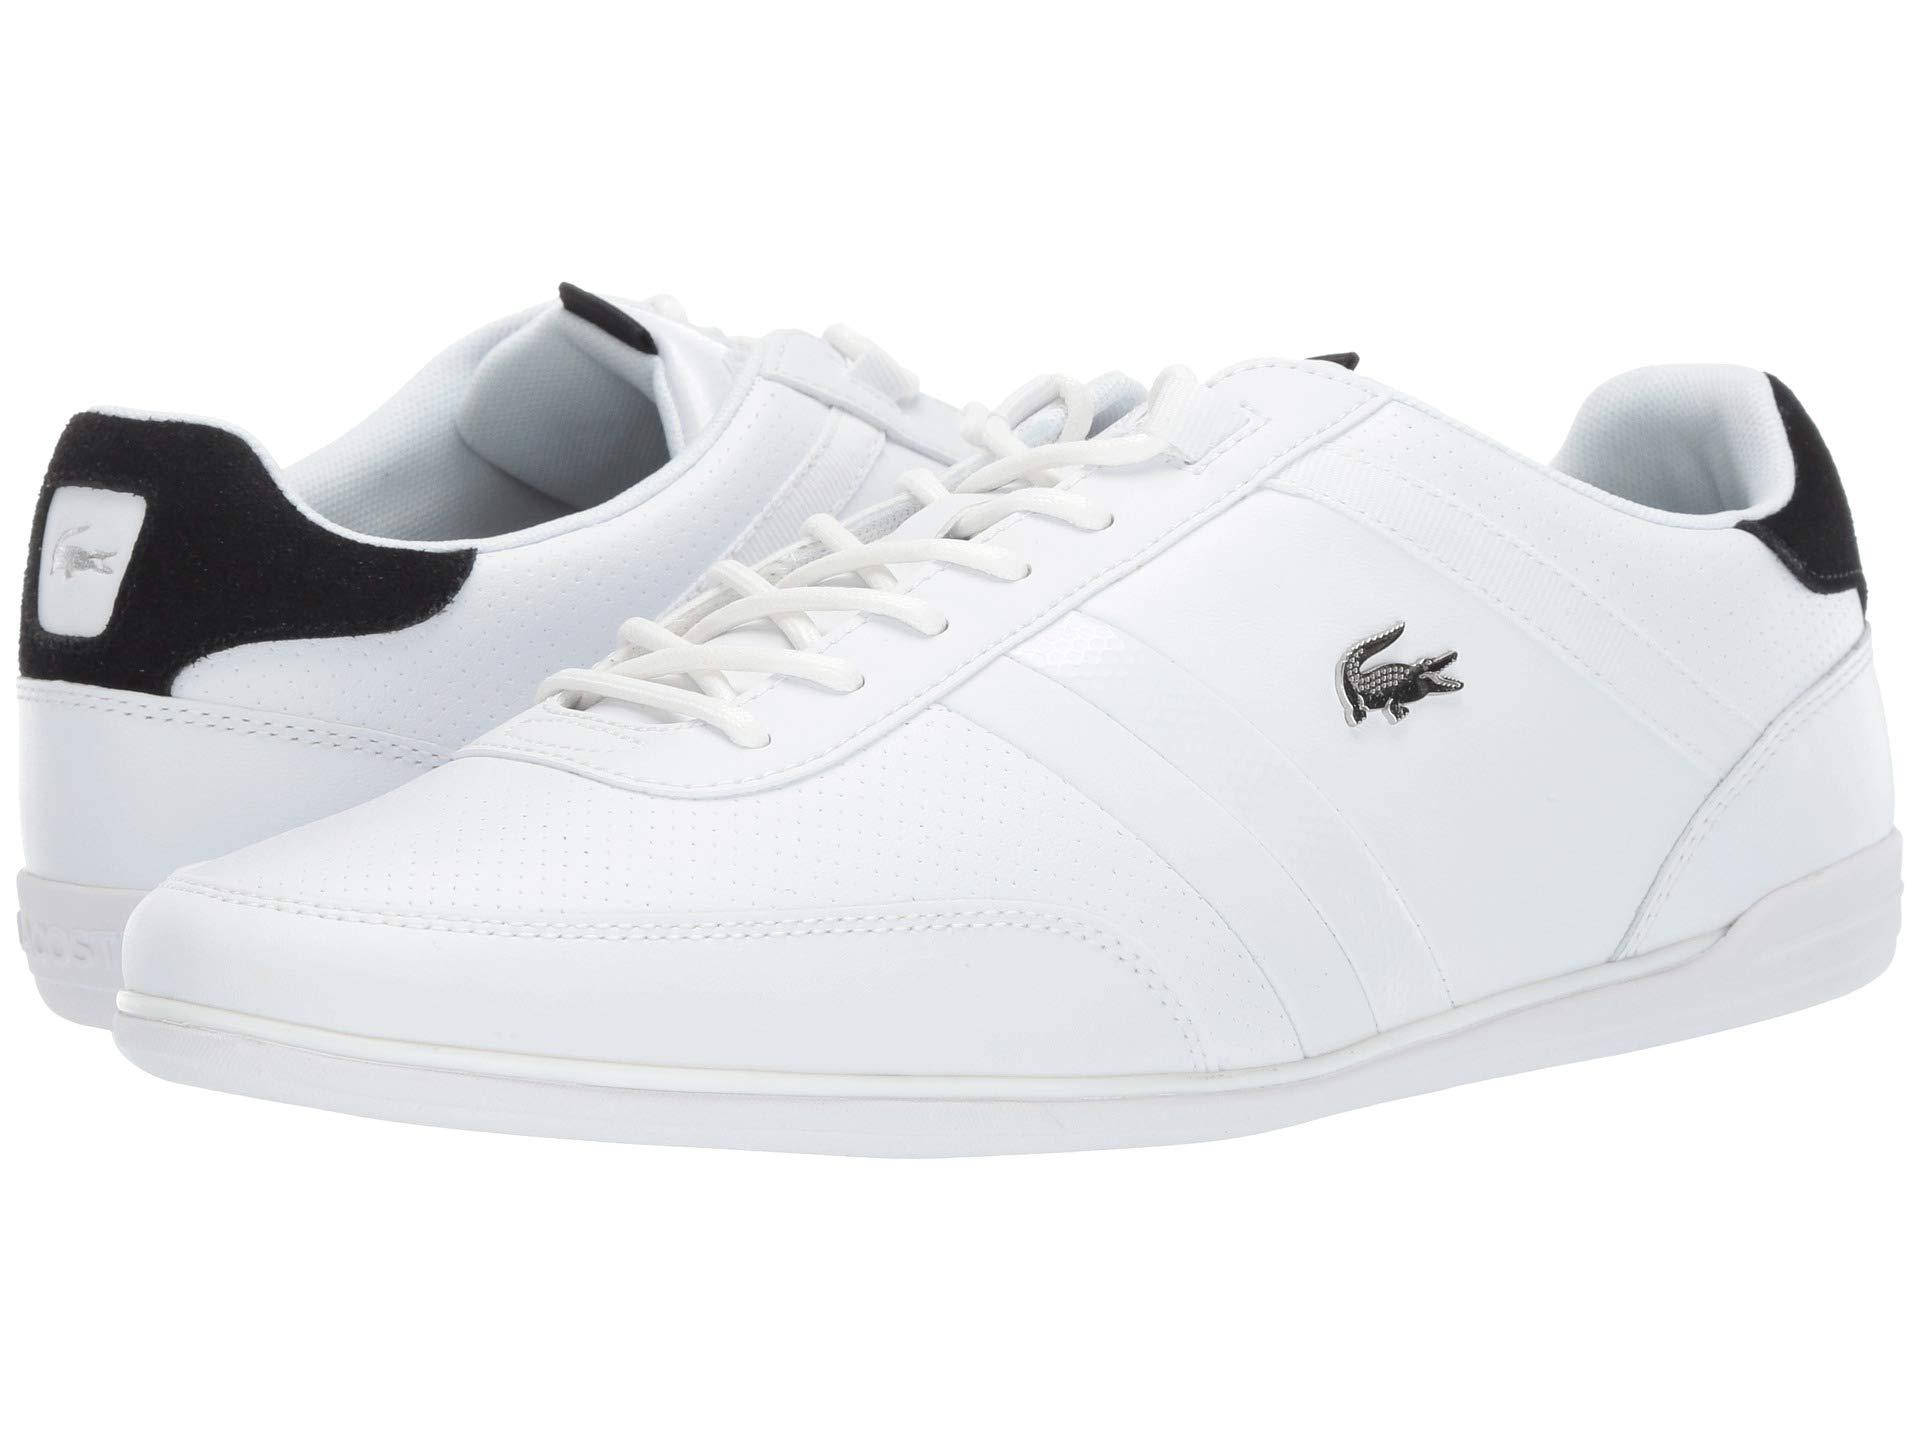 562d7ea68842 Lyst - Lacoste Giron 119 1 U Cma (navy white) Men s Shoes in White ...